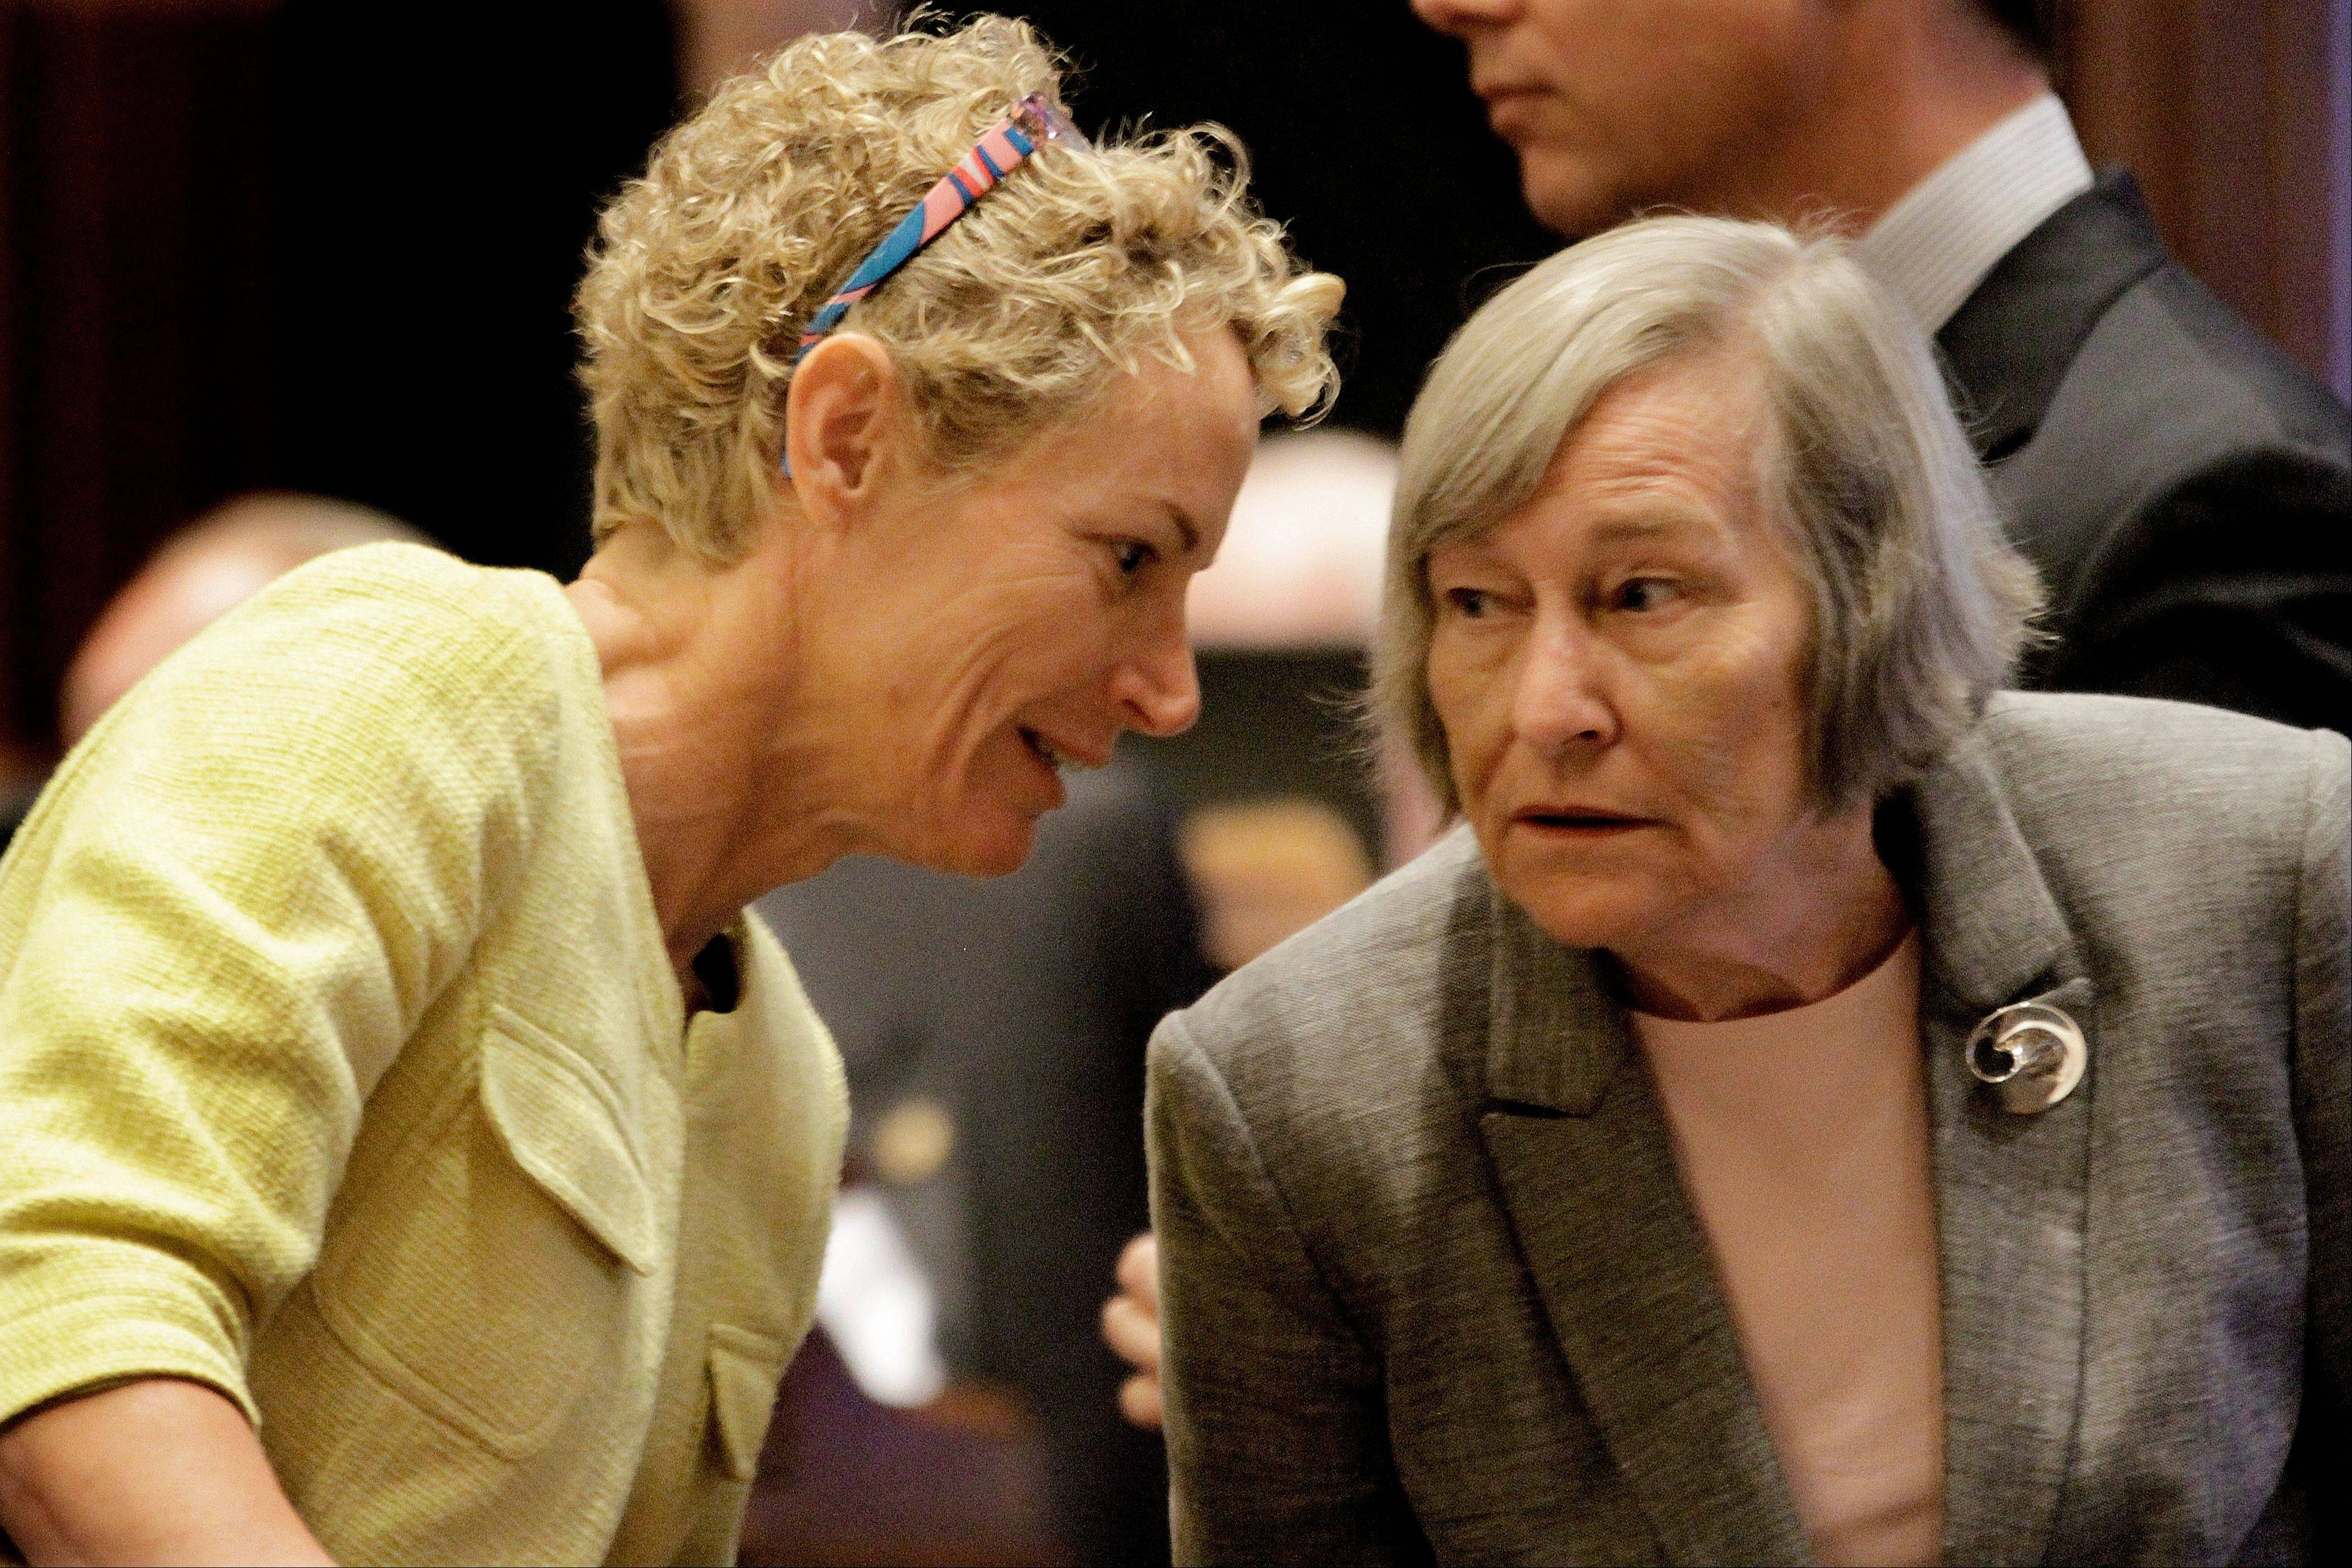 Democratic state Reps. Elaine Nekritz of Northbrook, left, and Barbara Flynn Currie of Chicago confer at the Illinois Capitol this summer as lawmakers considered how to tackle the state�s rising pension costs.